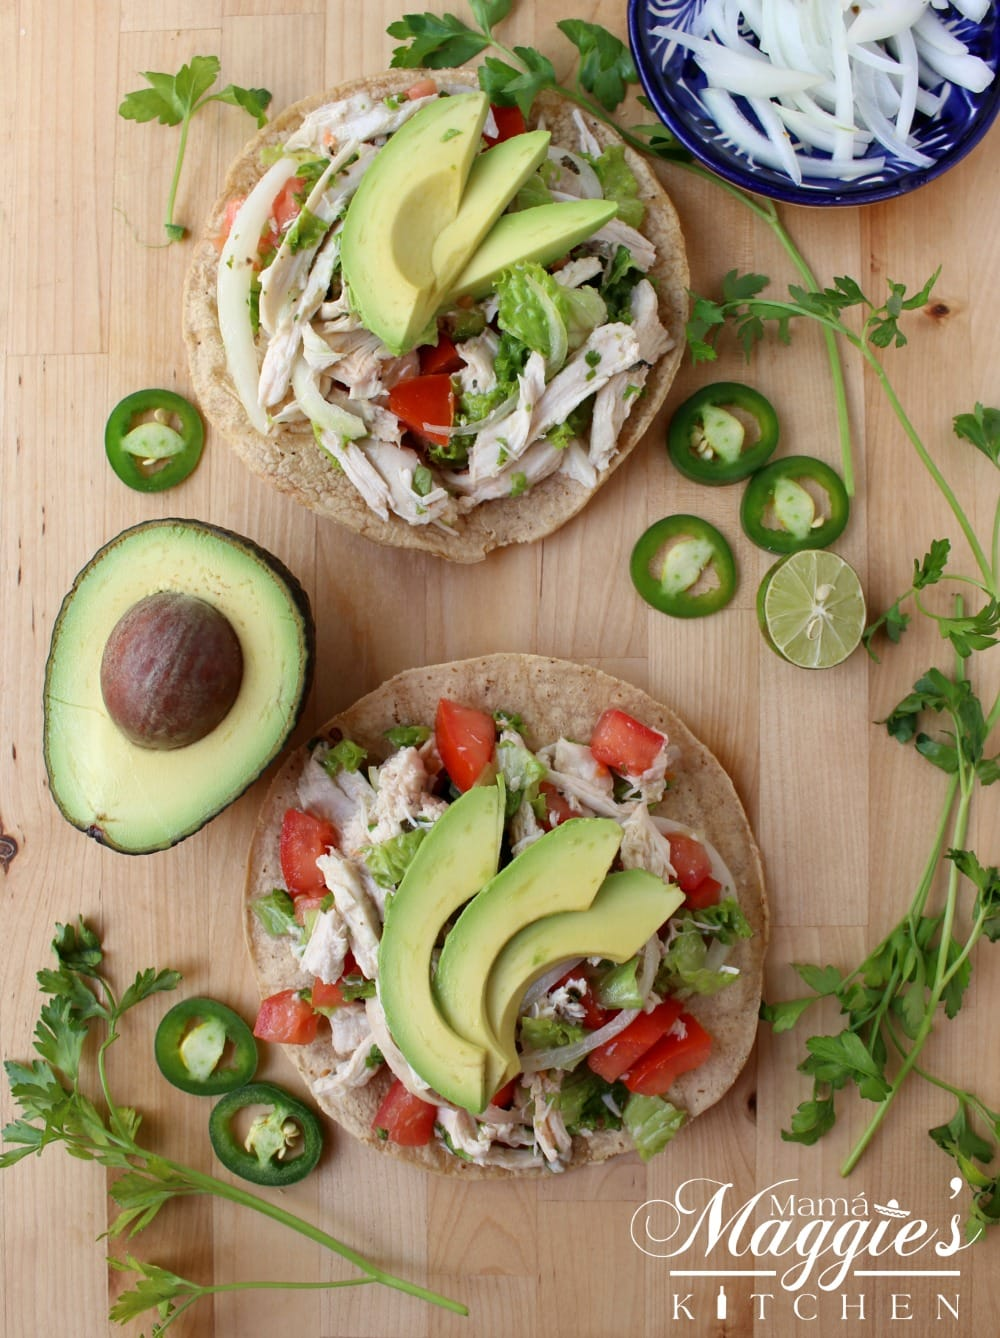 Two tostadas of Salpicon de Pollo topped with avocado slices and surrounded by cilantro leaves and jalapenos.